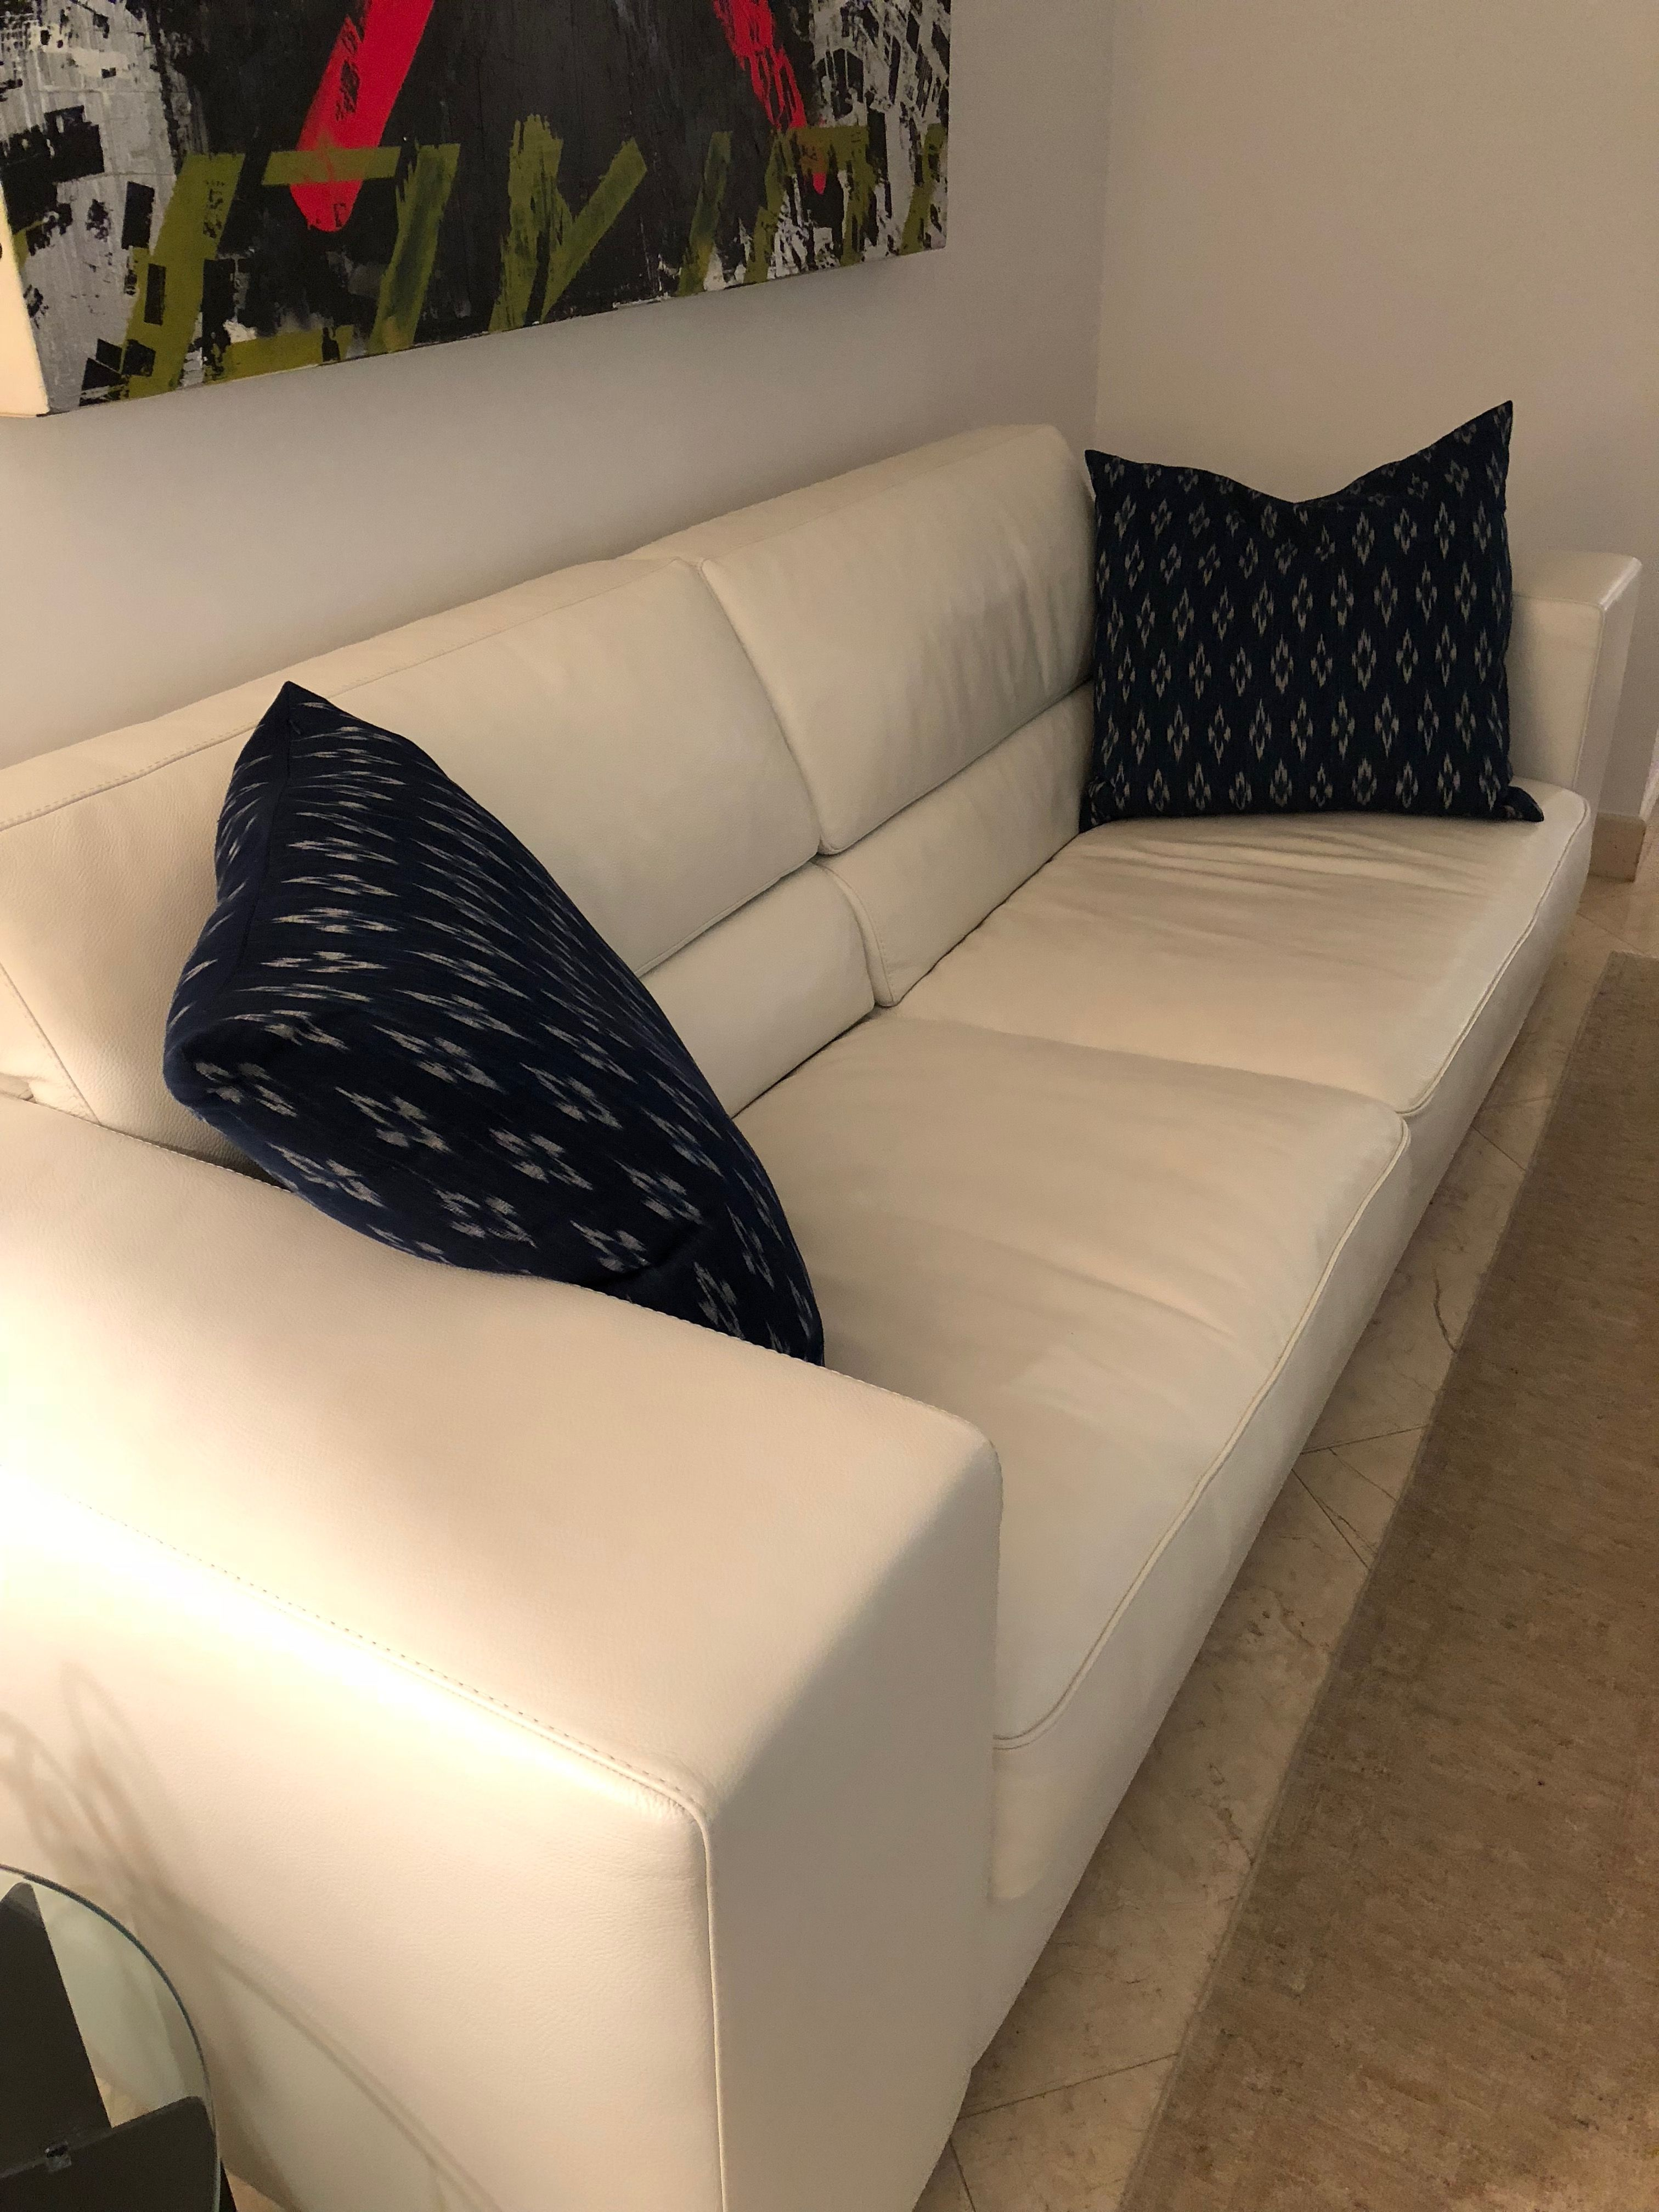 Animus Dominus White Leather Sofa Very Light Use Very Light Wear Original Price 5 500 Floor Mo Living Room Design Decor Floor Cushions White Leather Sofas